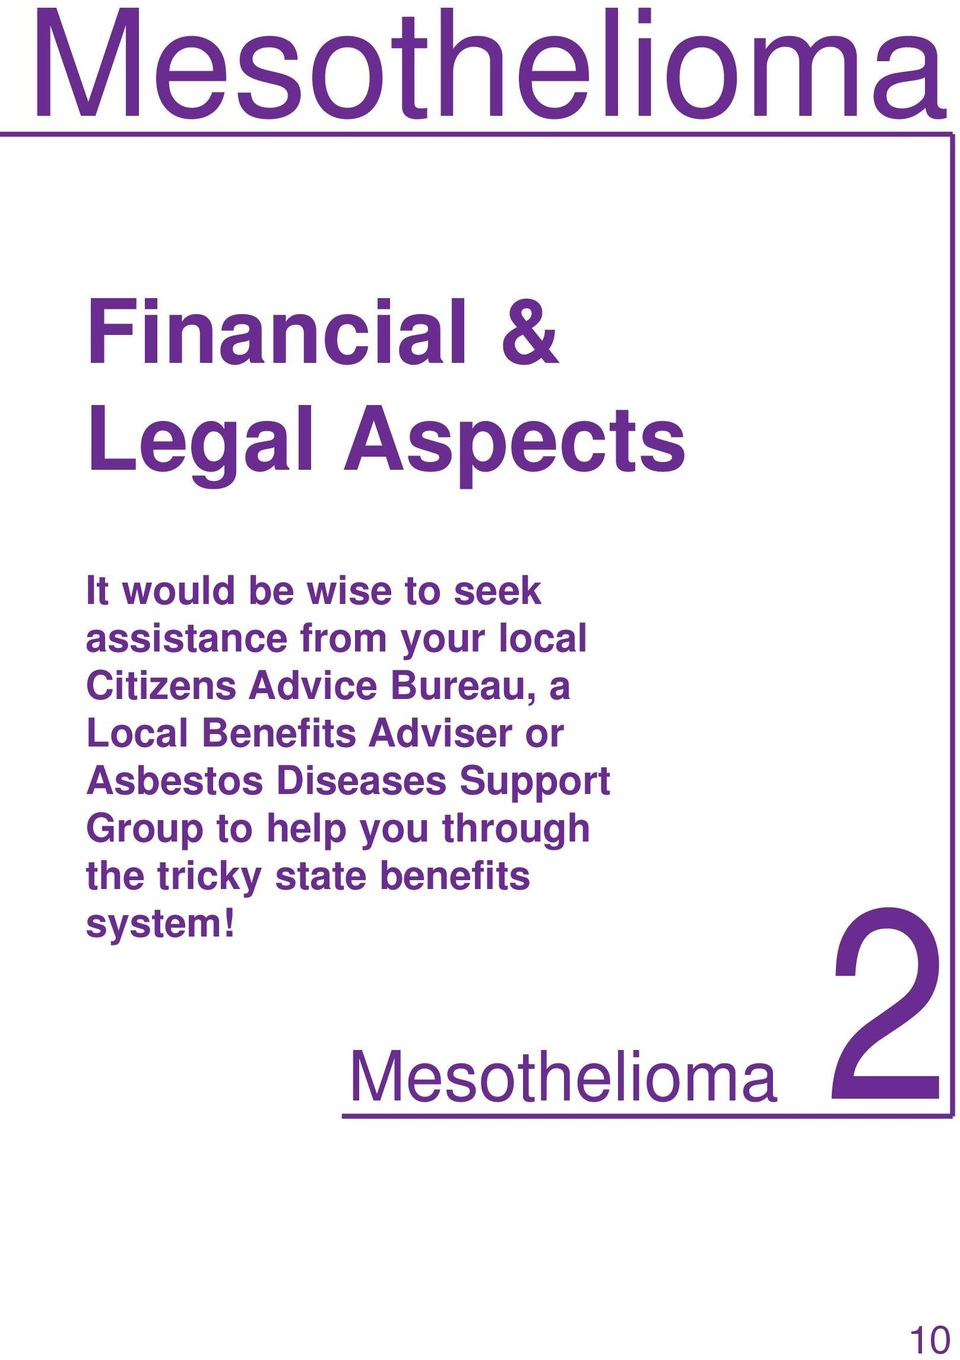 Benefits Adviser or Asbestos Diseases Support Group to